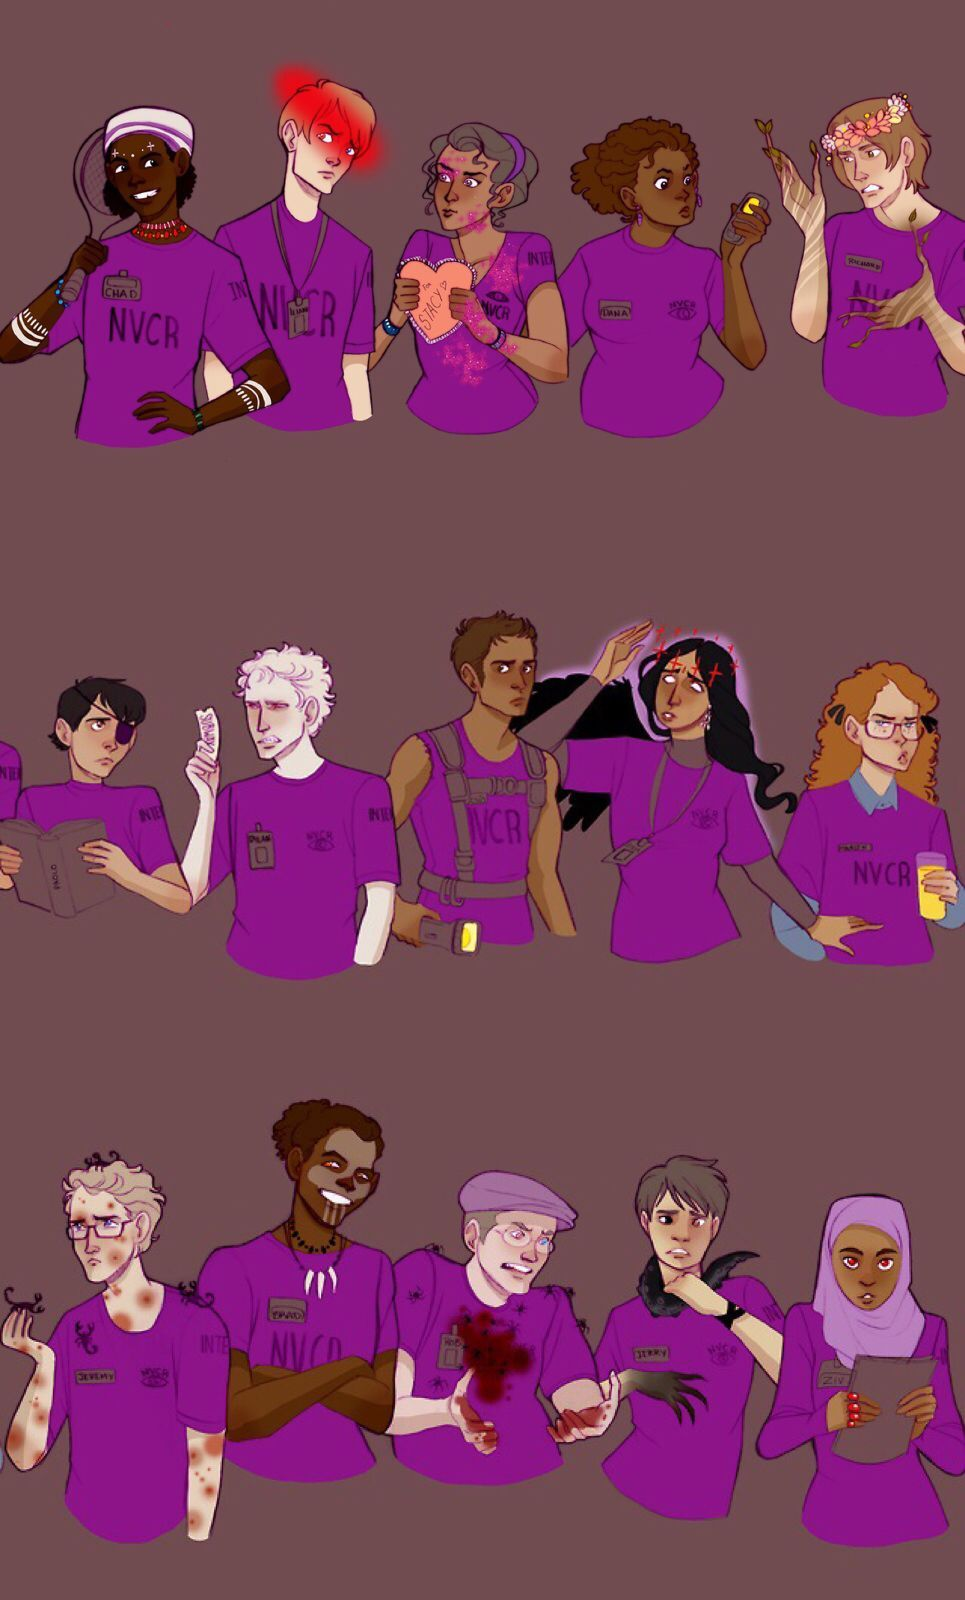 Vale interns. Rant - Stacy did not die on valentine's day!!! Her death was mentioned has happening several months previous to the episode valentines day!!!! The way she died is never mentioned!!! - End Rant.Night Vale interns. Rant - Stacy did not die on valentine's day!!! Her death was mentioned has happening several months previous to the episode valentines d...